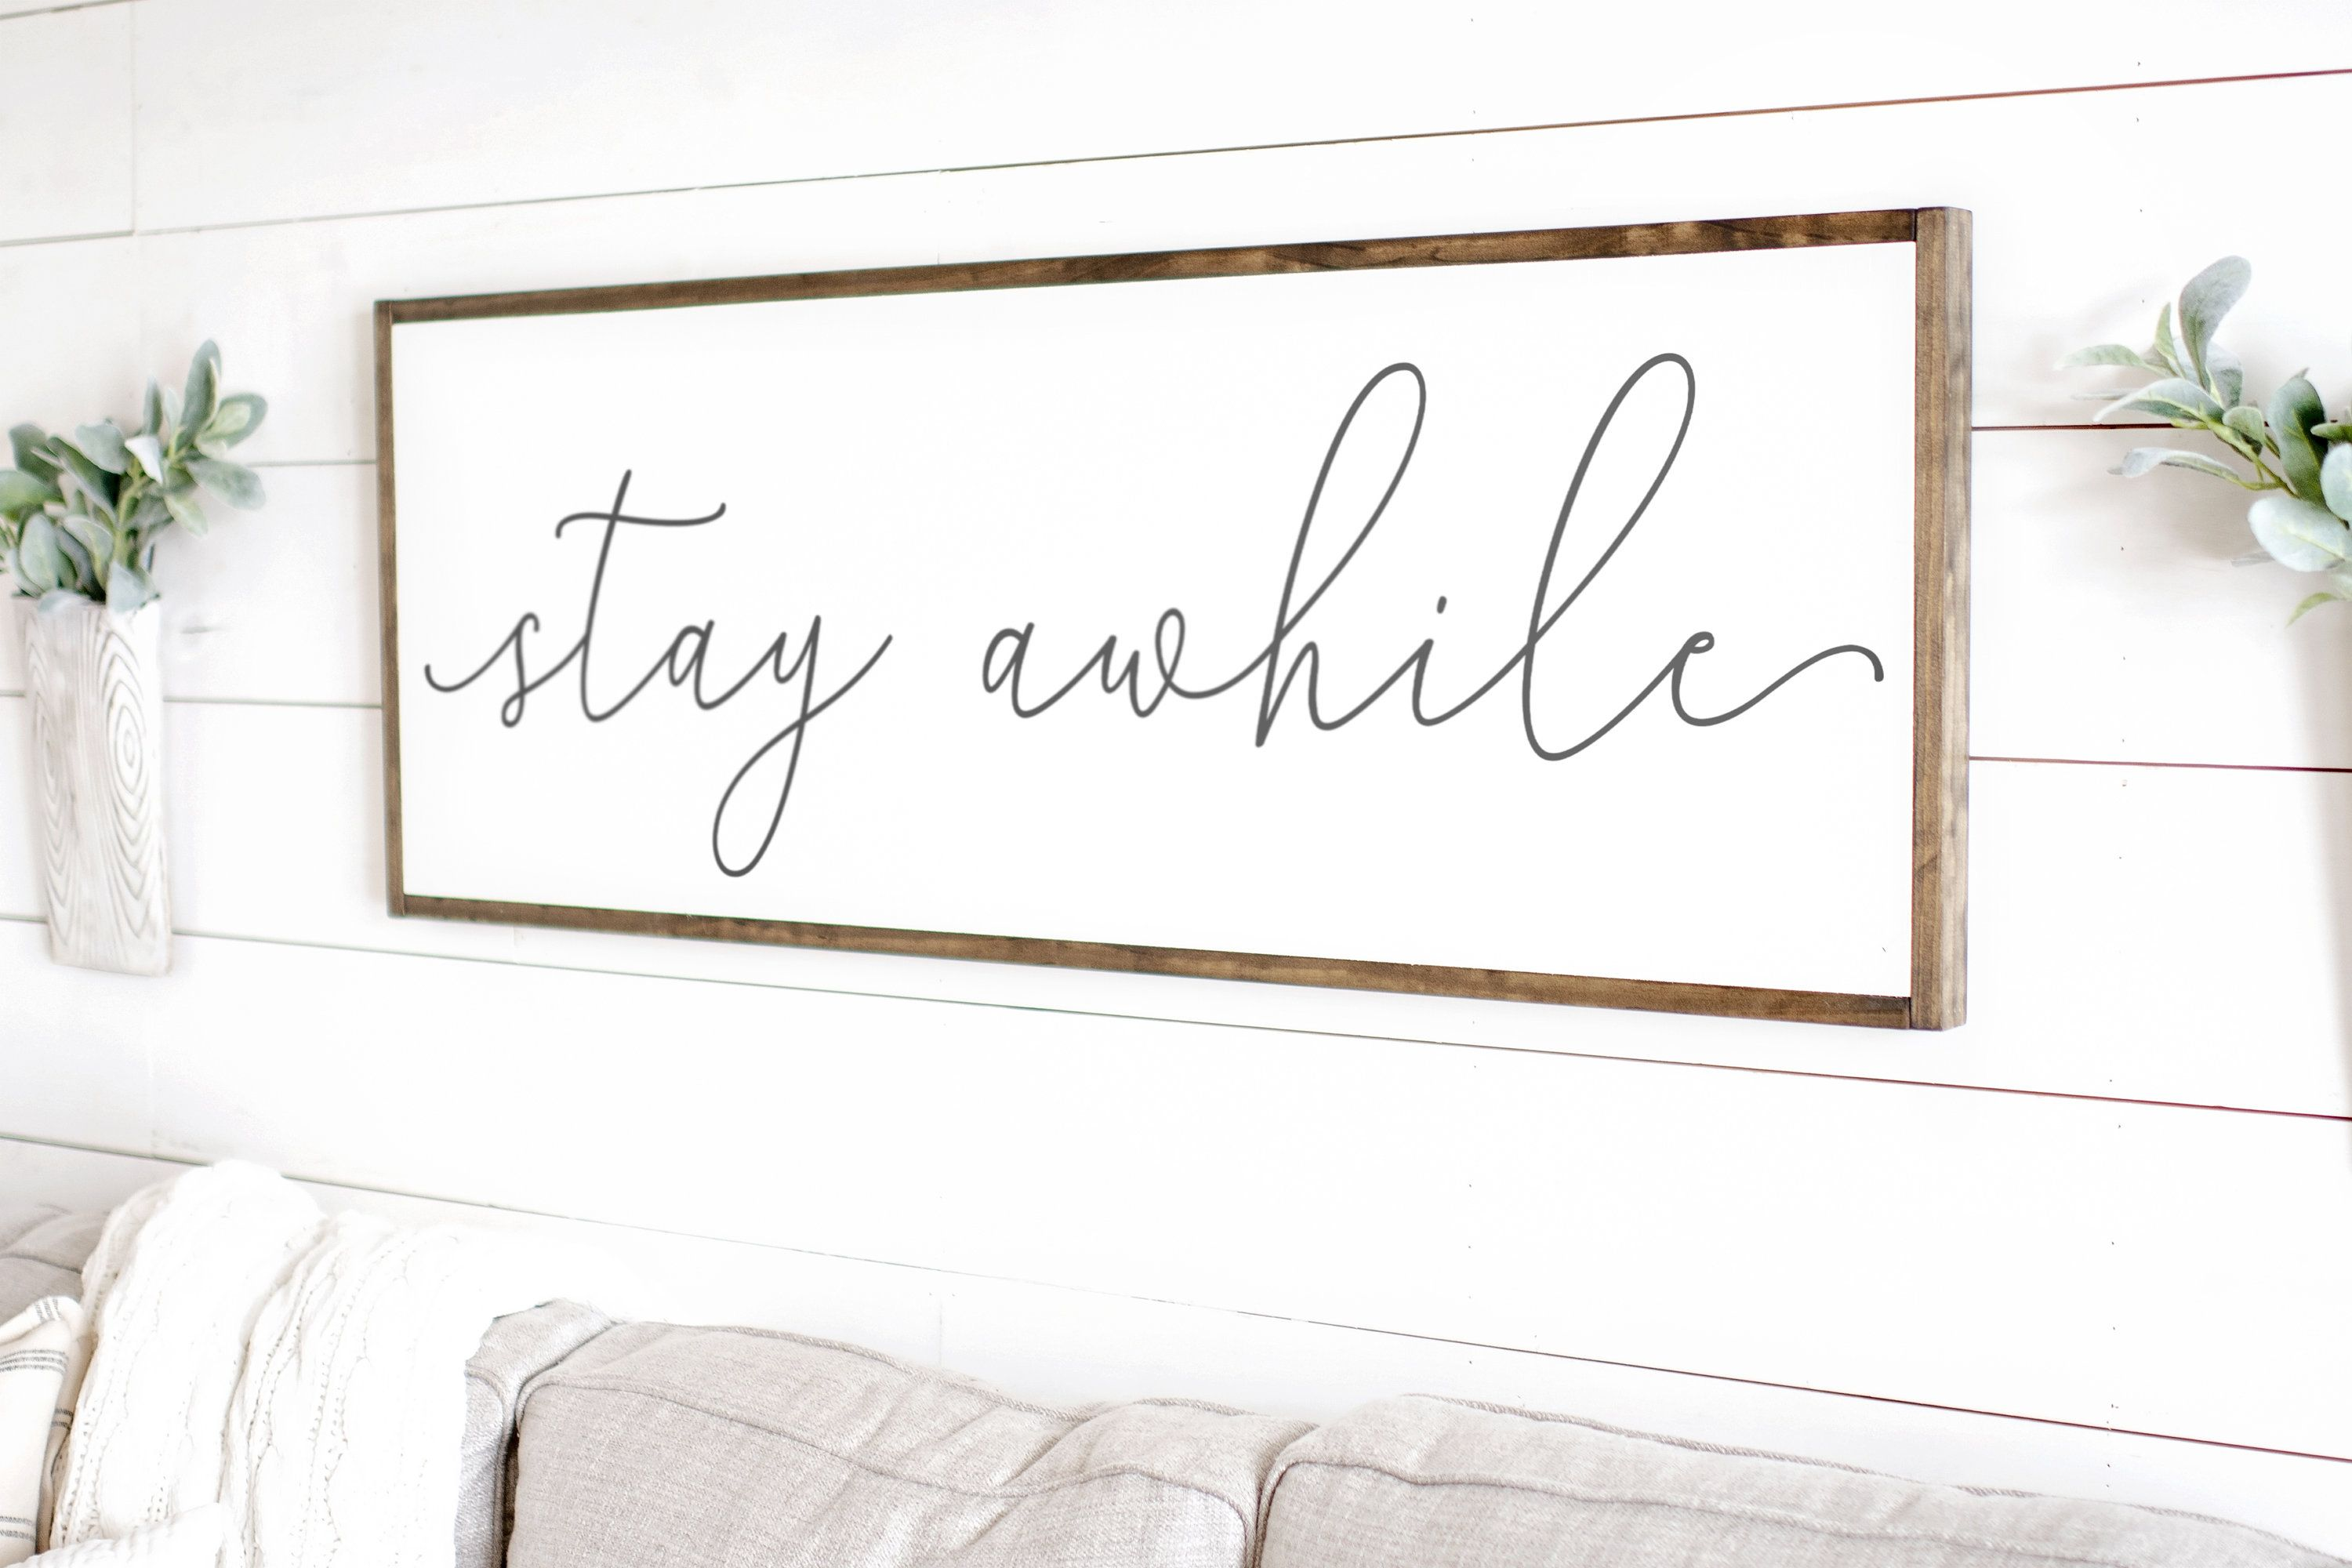 Wood Sign Entryway Wood Sign Living Room Signs Farmhouse wall decor Living Room Wall Decor entryway wall decor Stay awhile sign